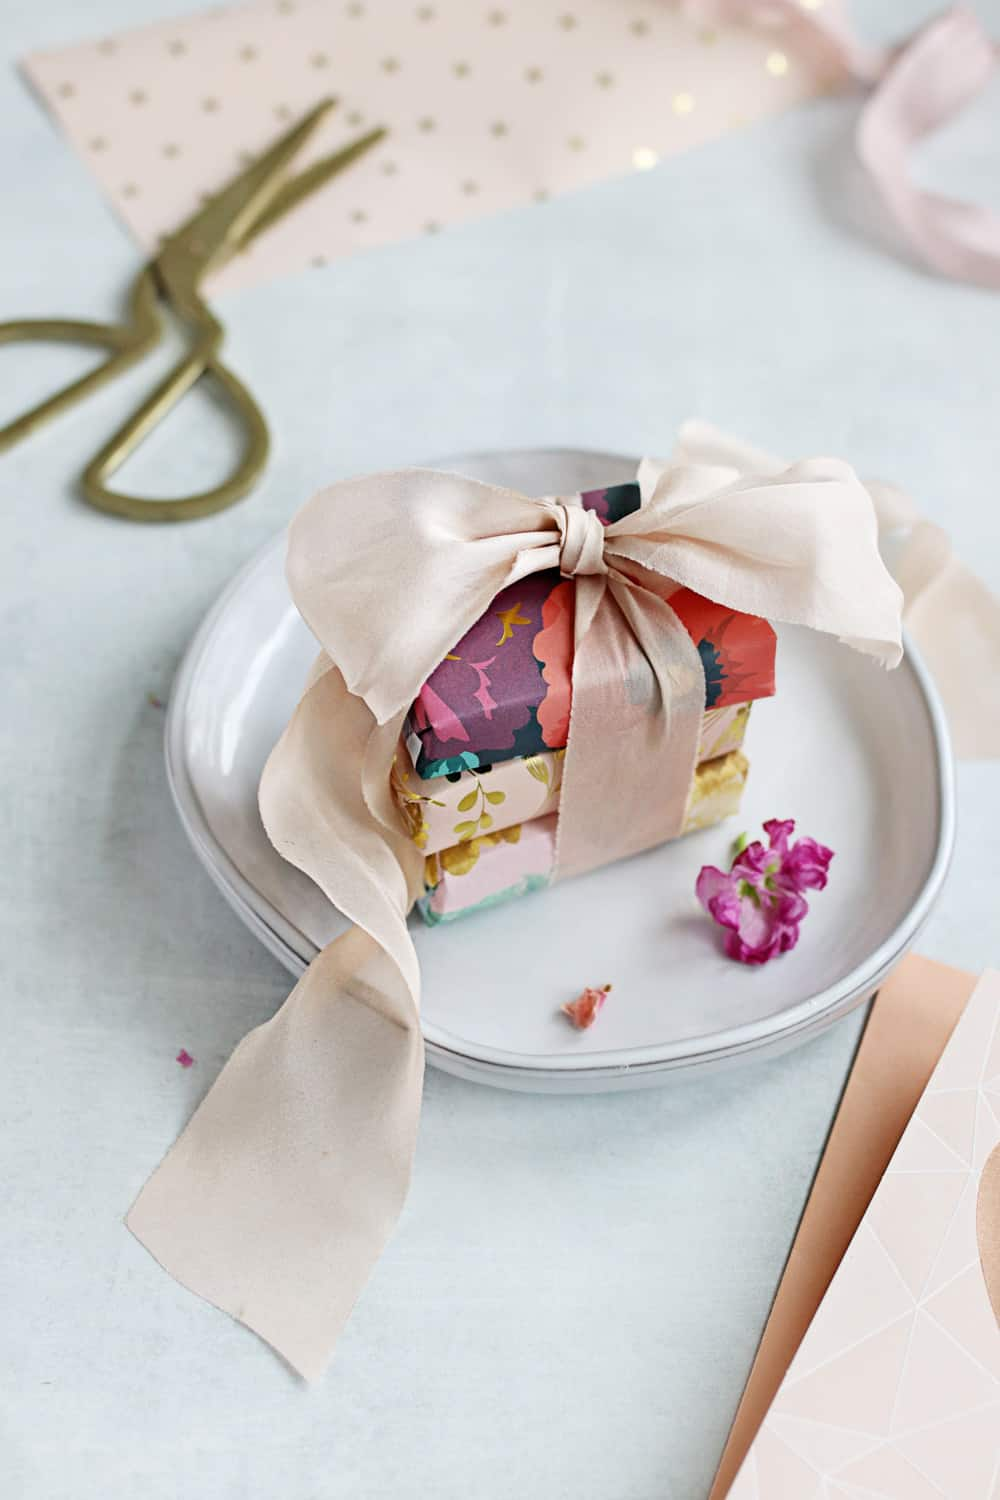 These DIY Flower Petal Soaps Are the Perfect Mother's Day Gift